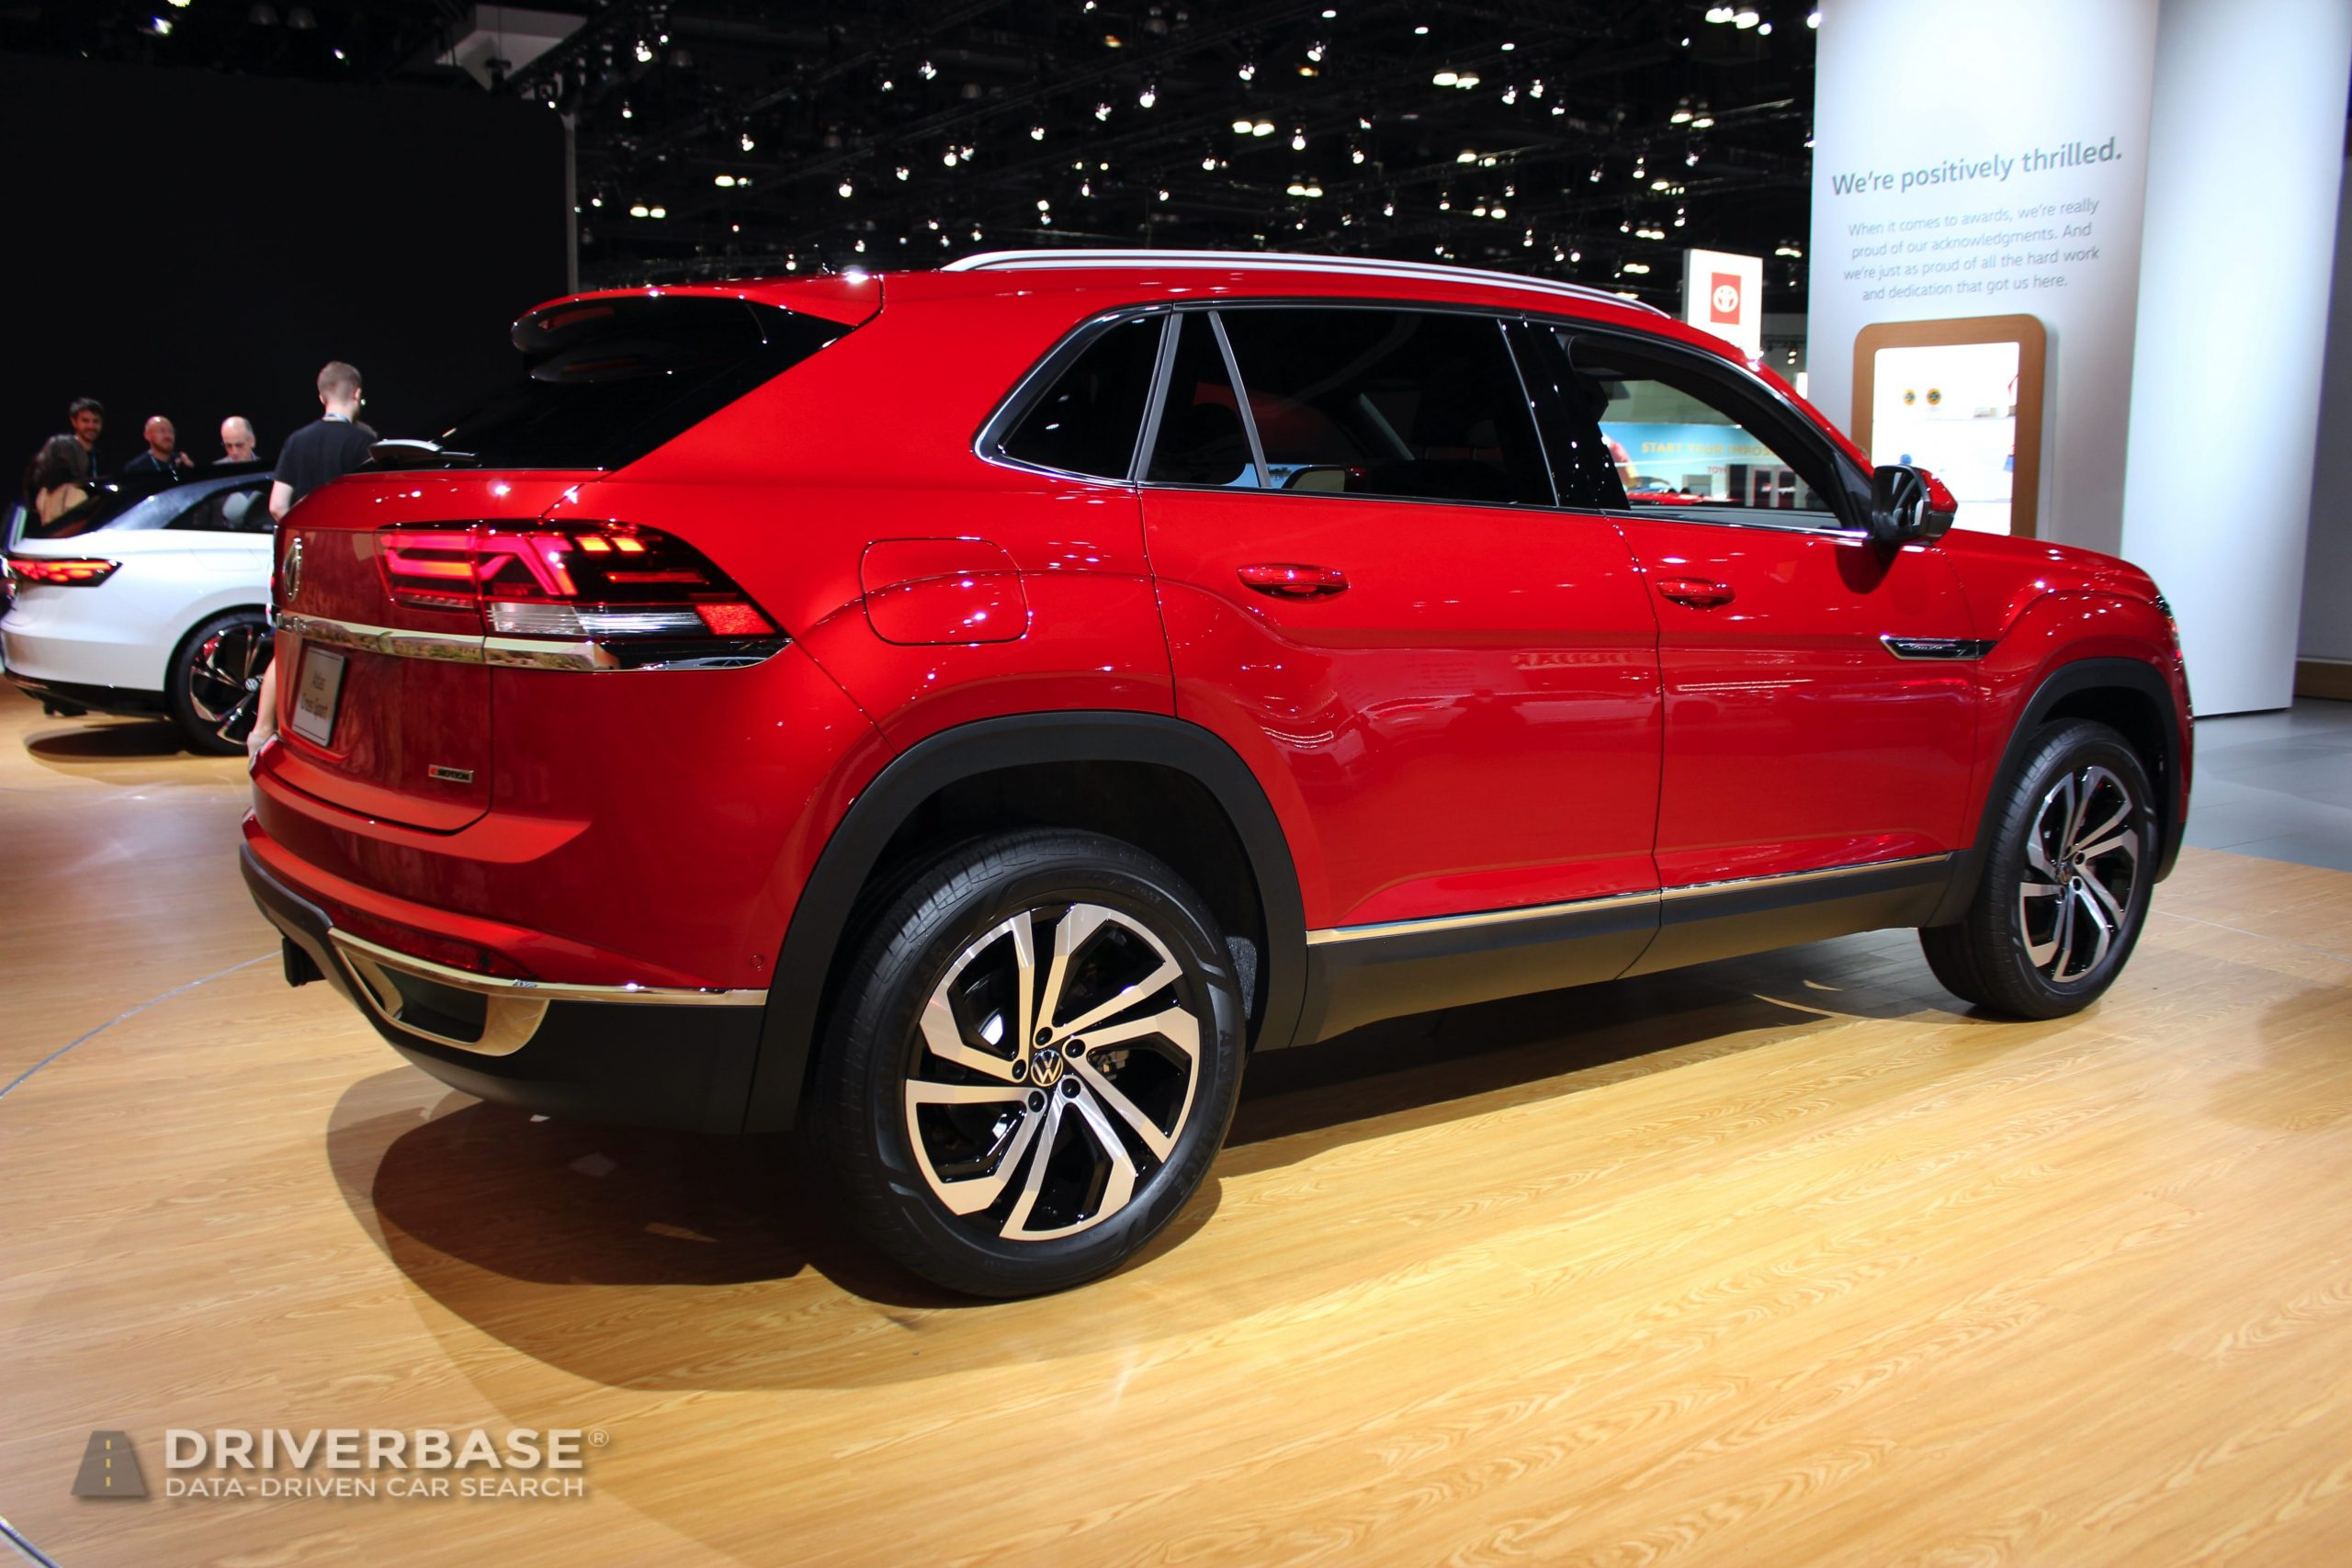 2020 Volkswagen Atlas Cross Sport SUV at the 2019 Los Angeles Auto Show